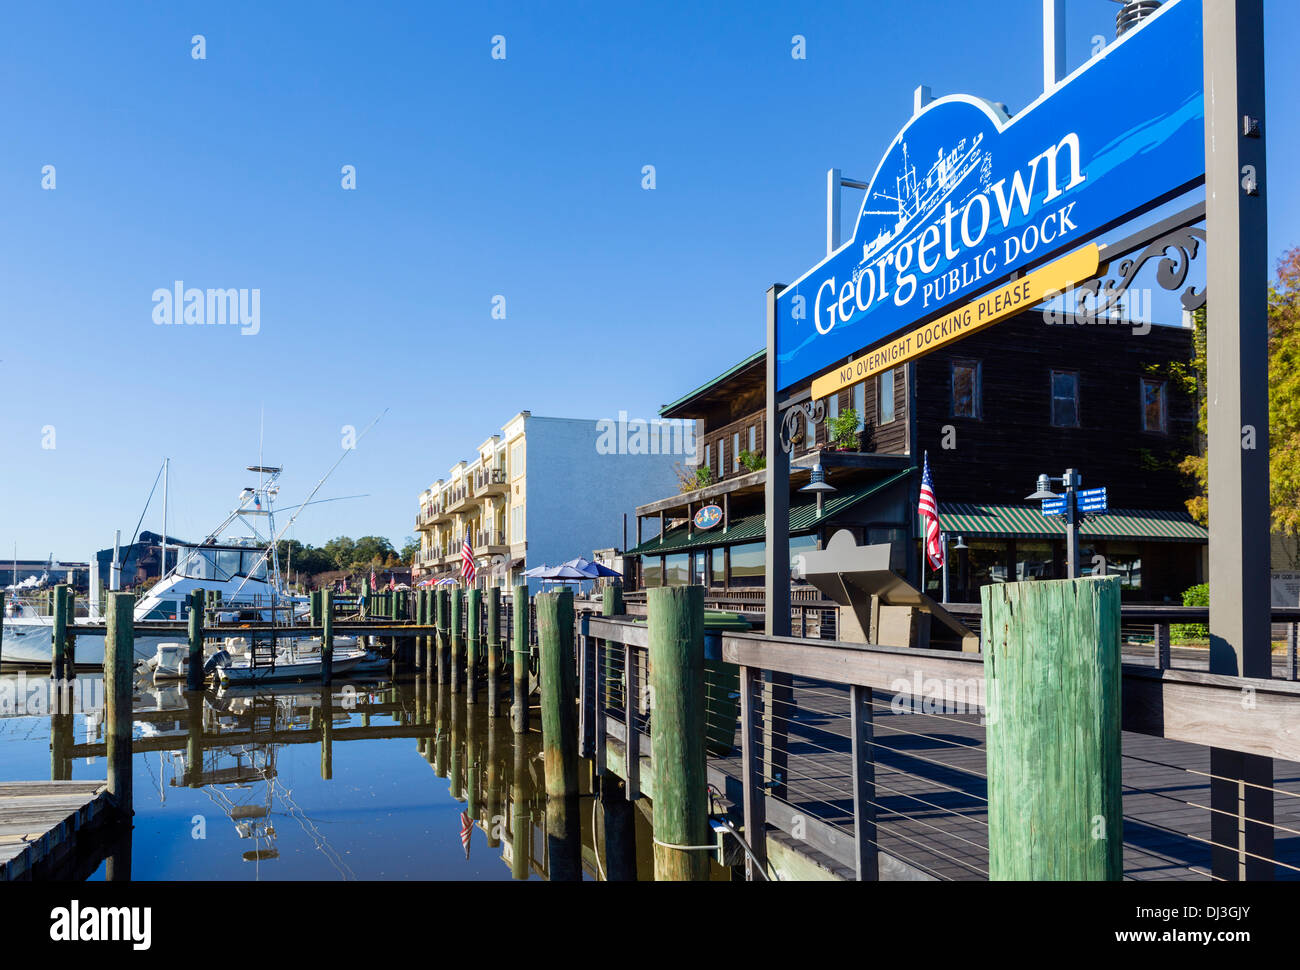 The waterfront in historic Georgetown, South Carolina, USA - Stock Image